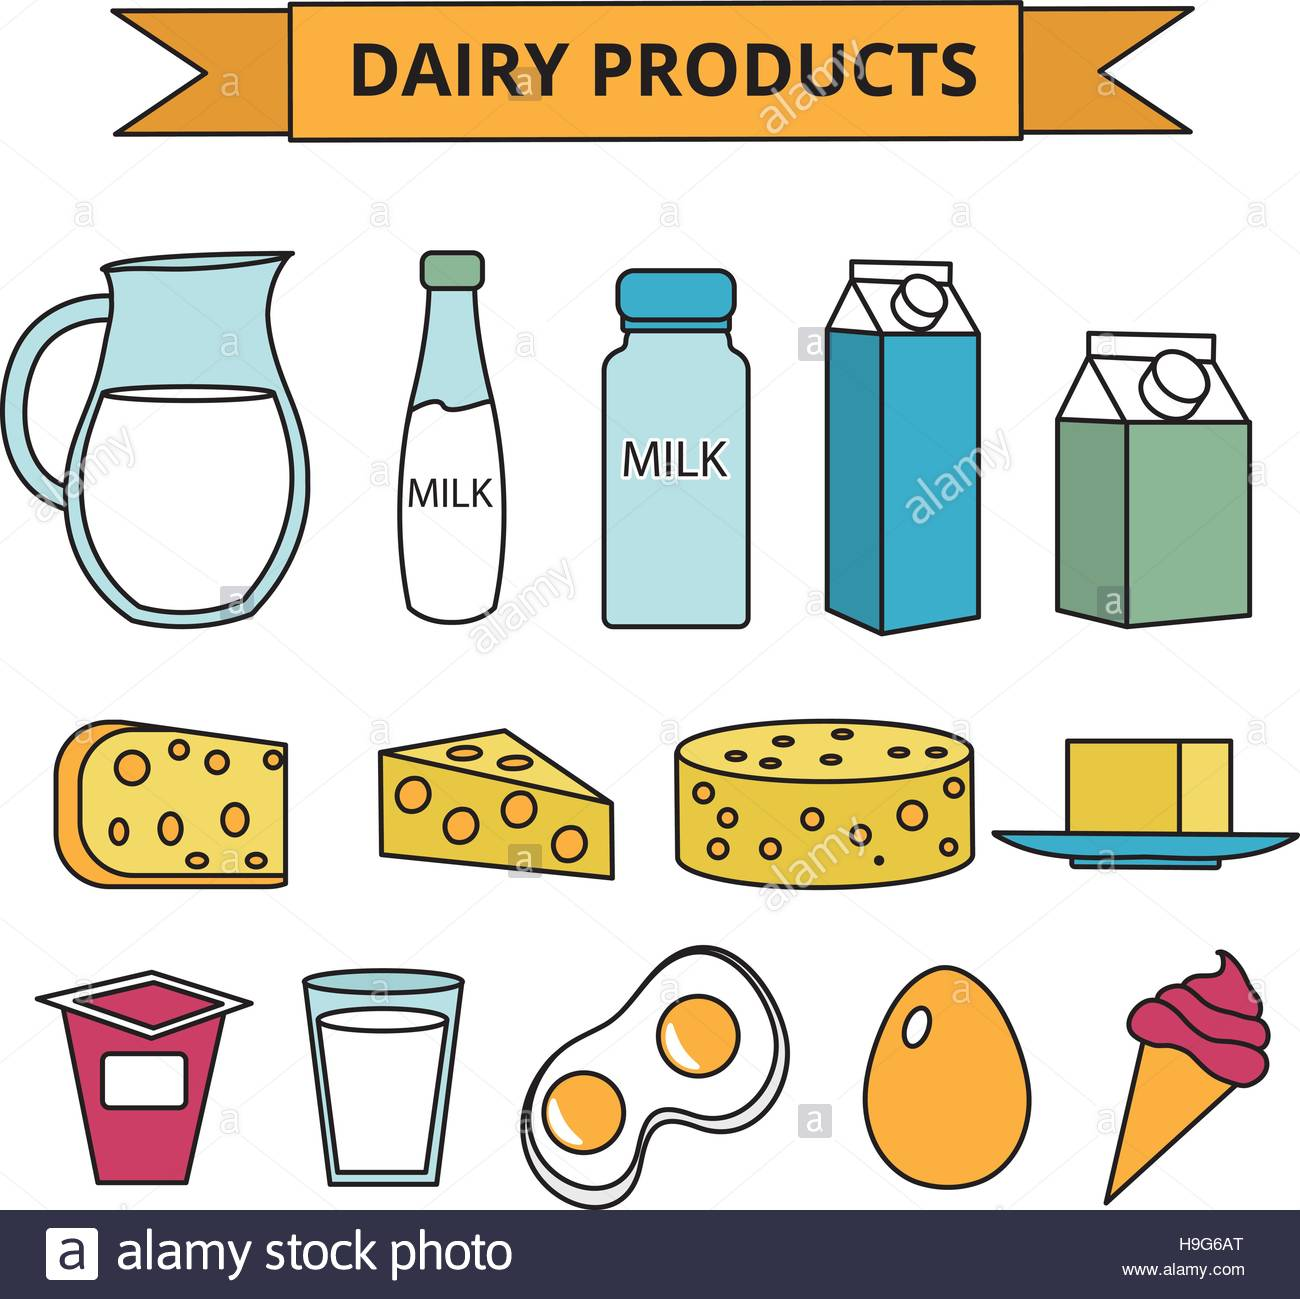 hight resolution of dairy products clipart 10